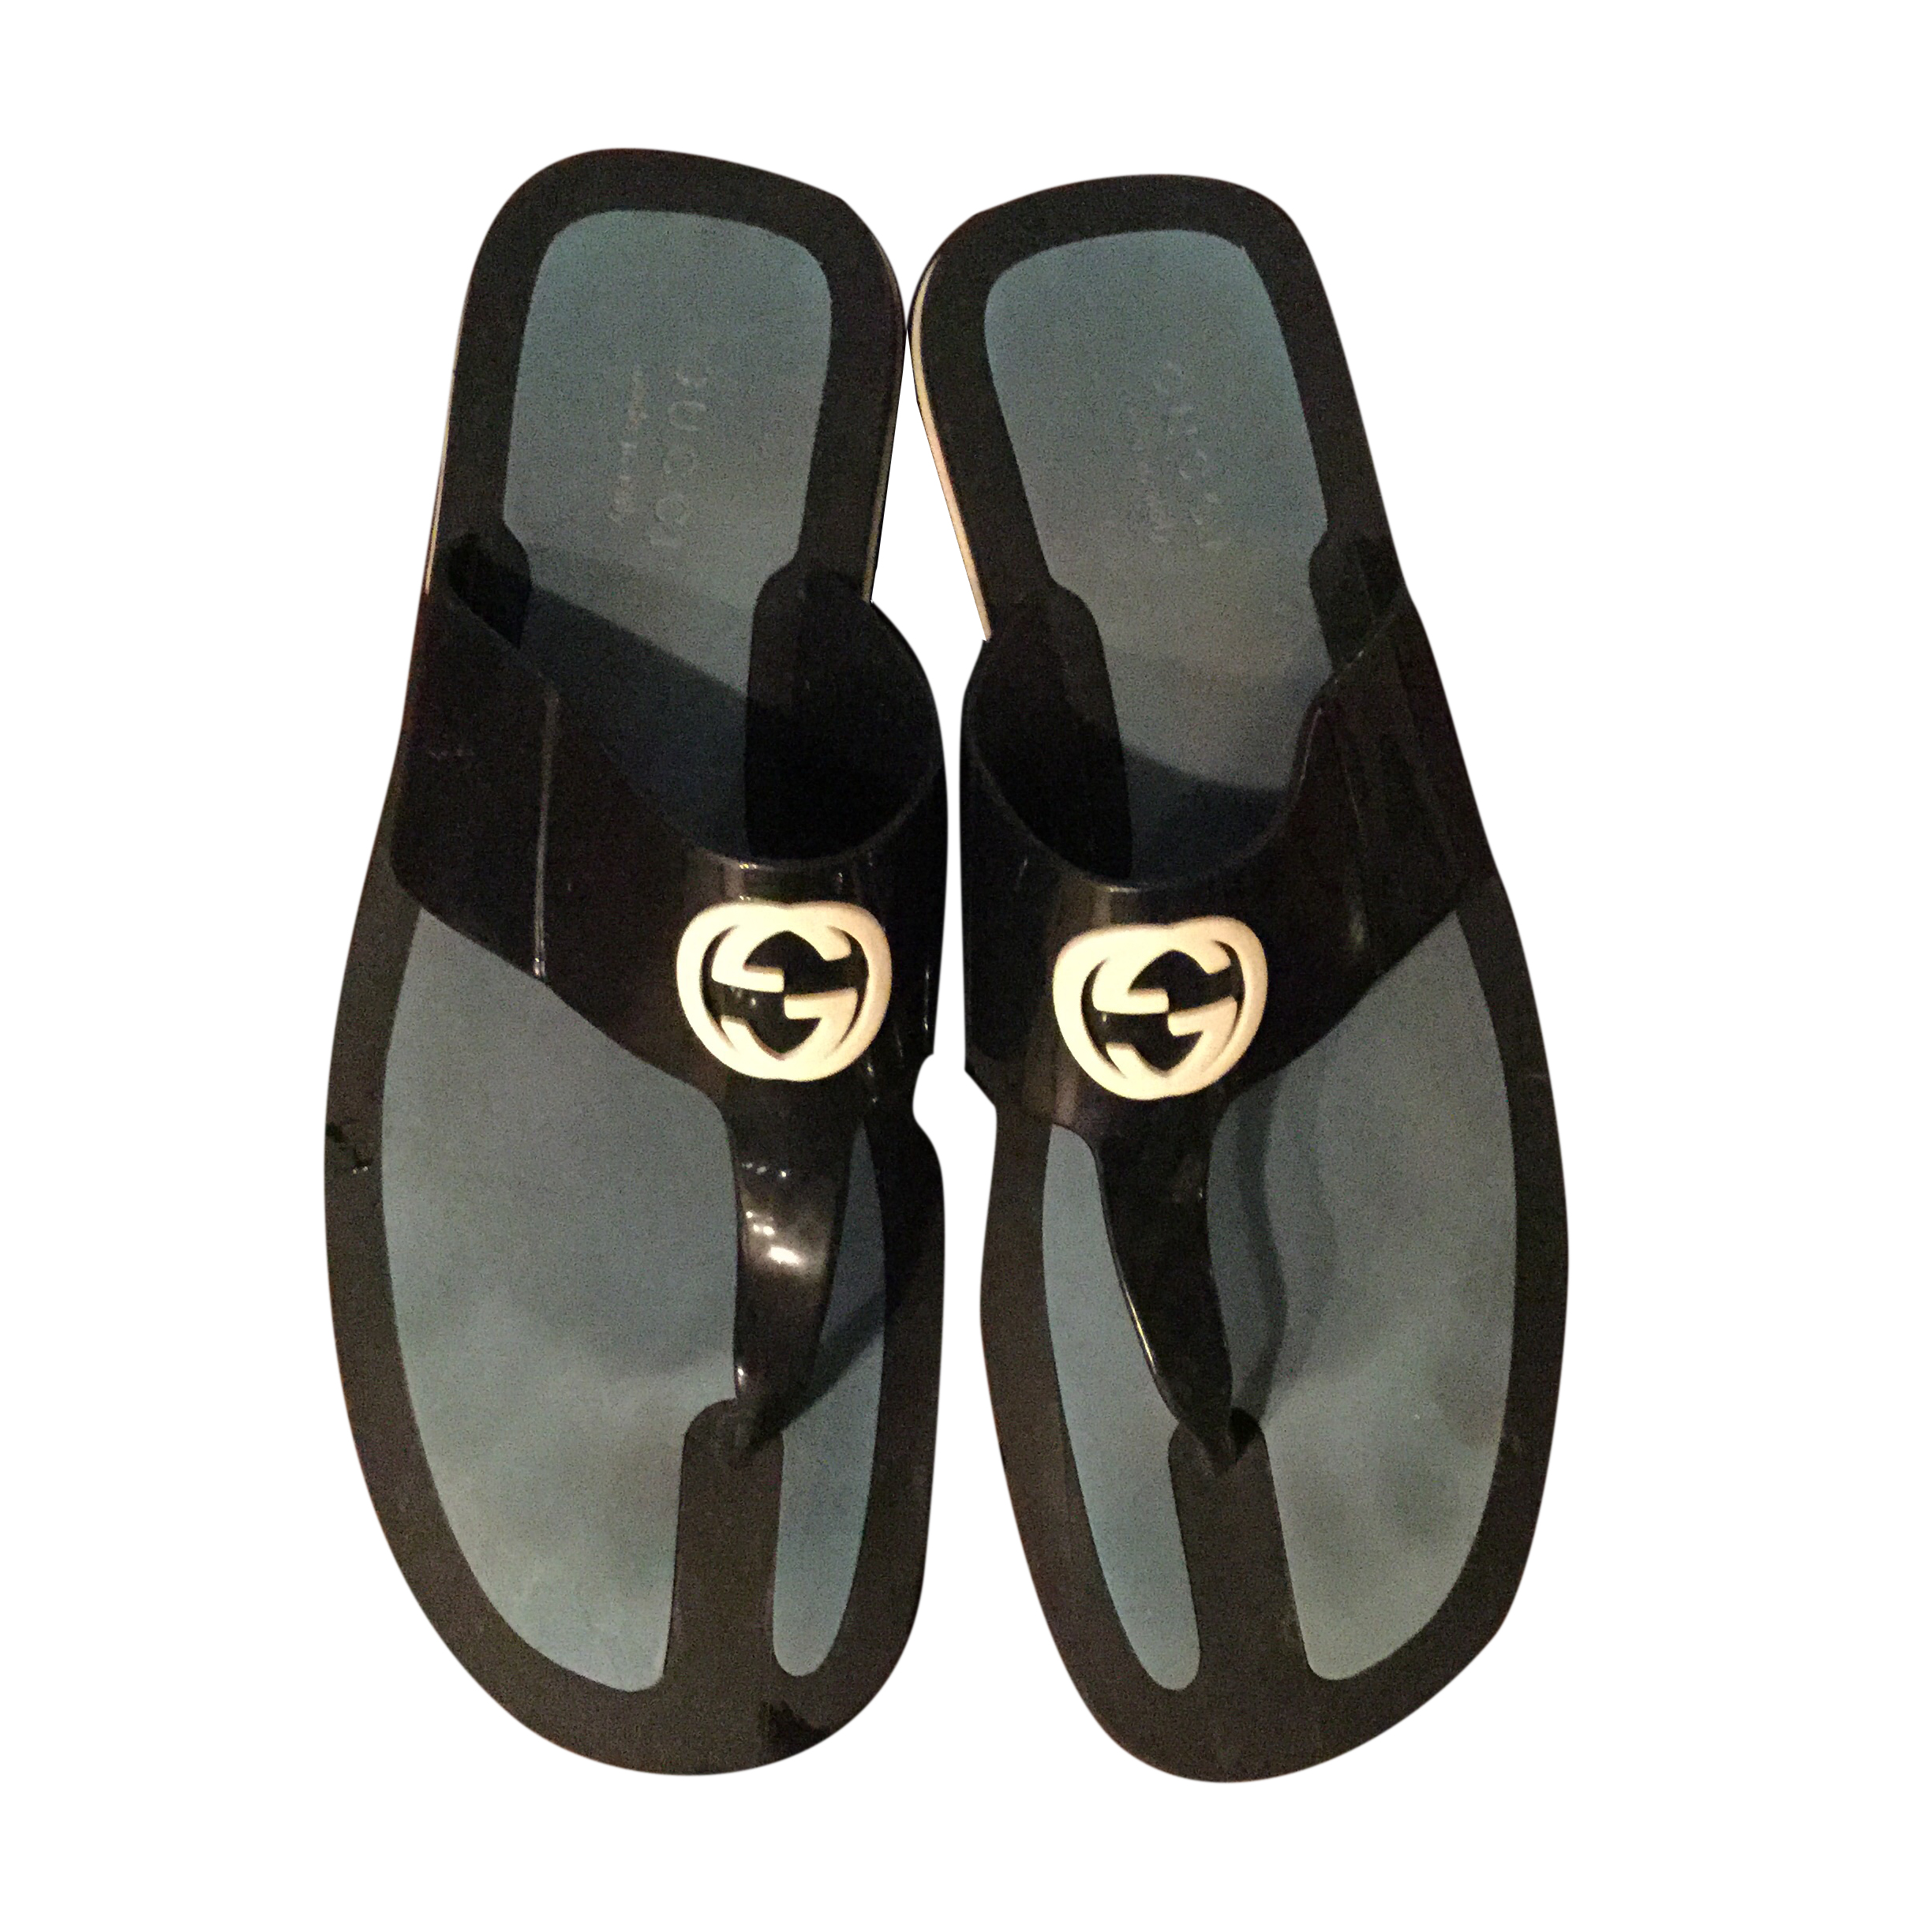 Gucci men's sandals